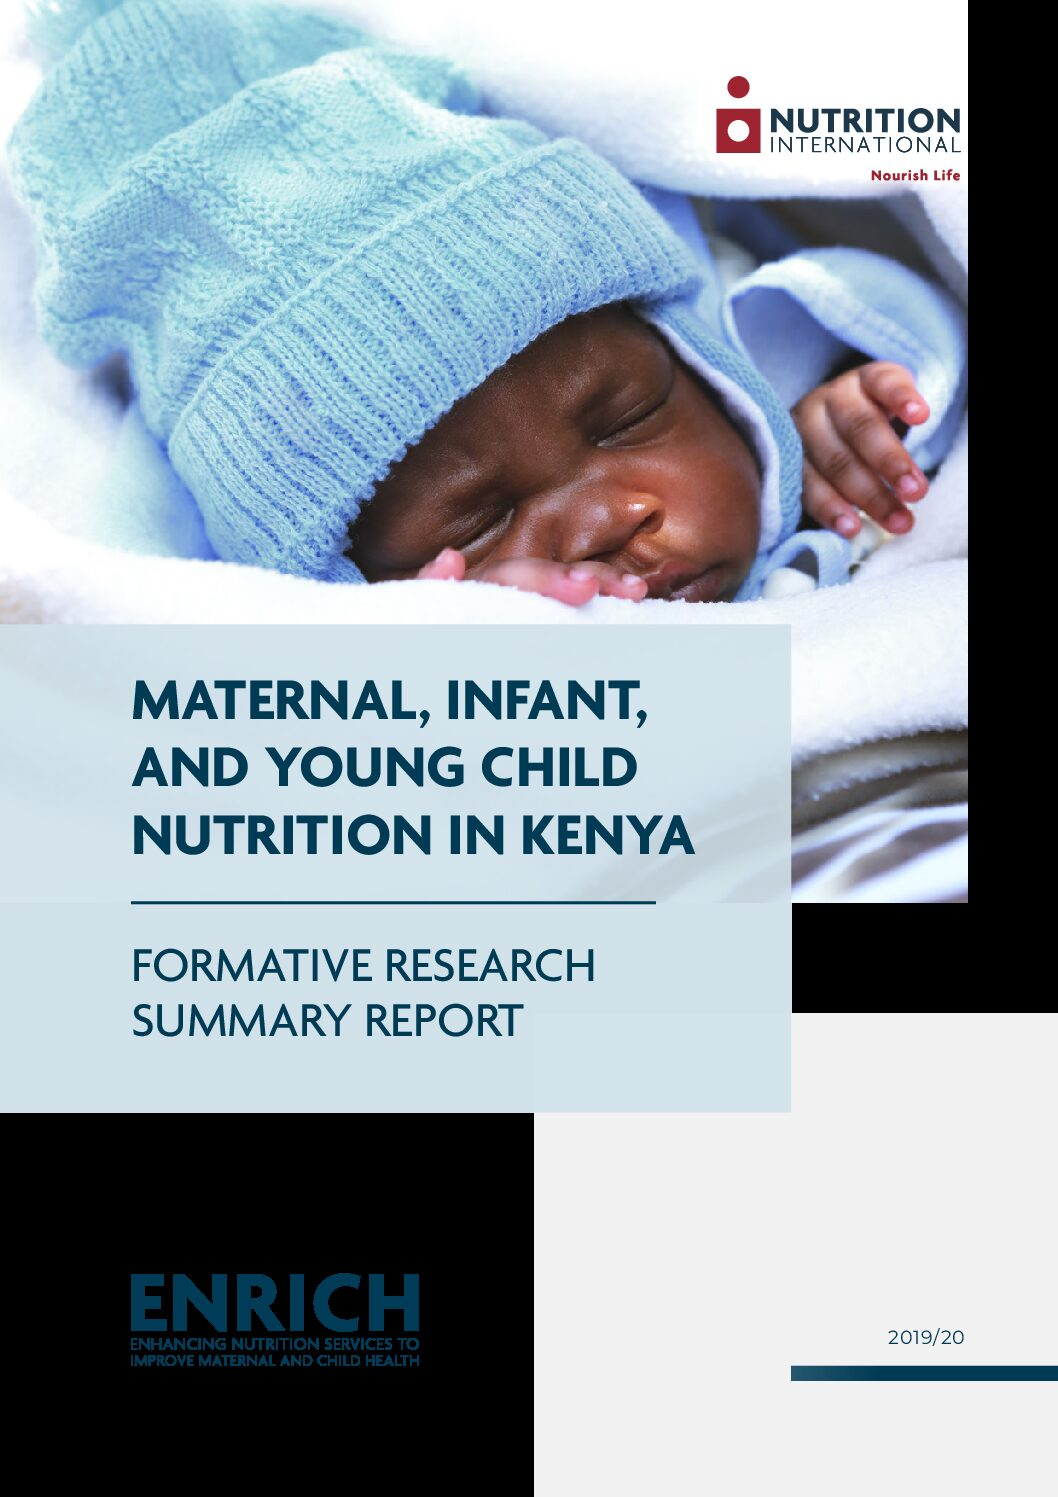 Maternal, Infant, and Young Child Nutrition in Kenya: Formative research summary report thumbnail